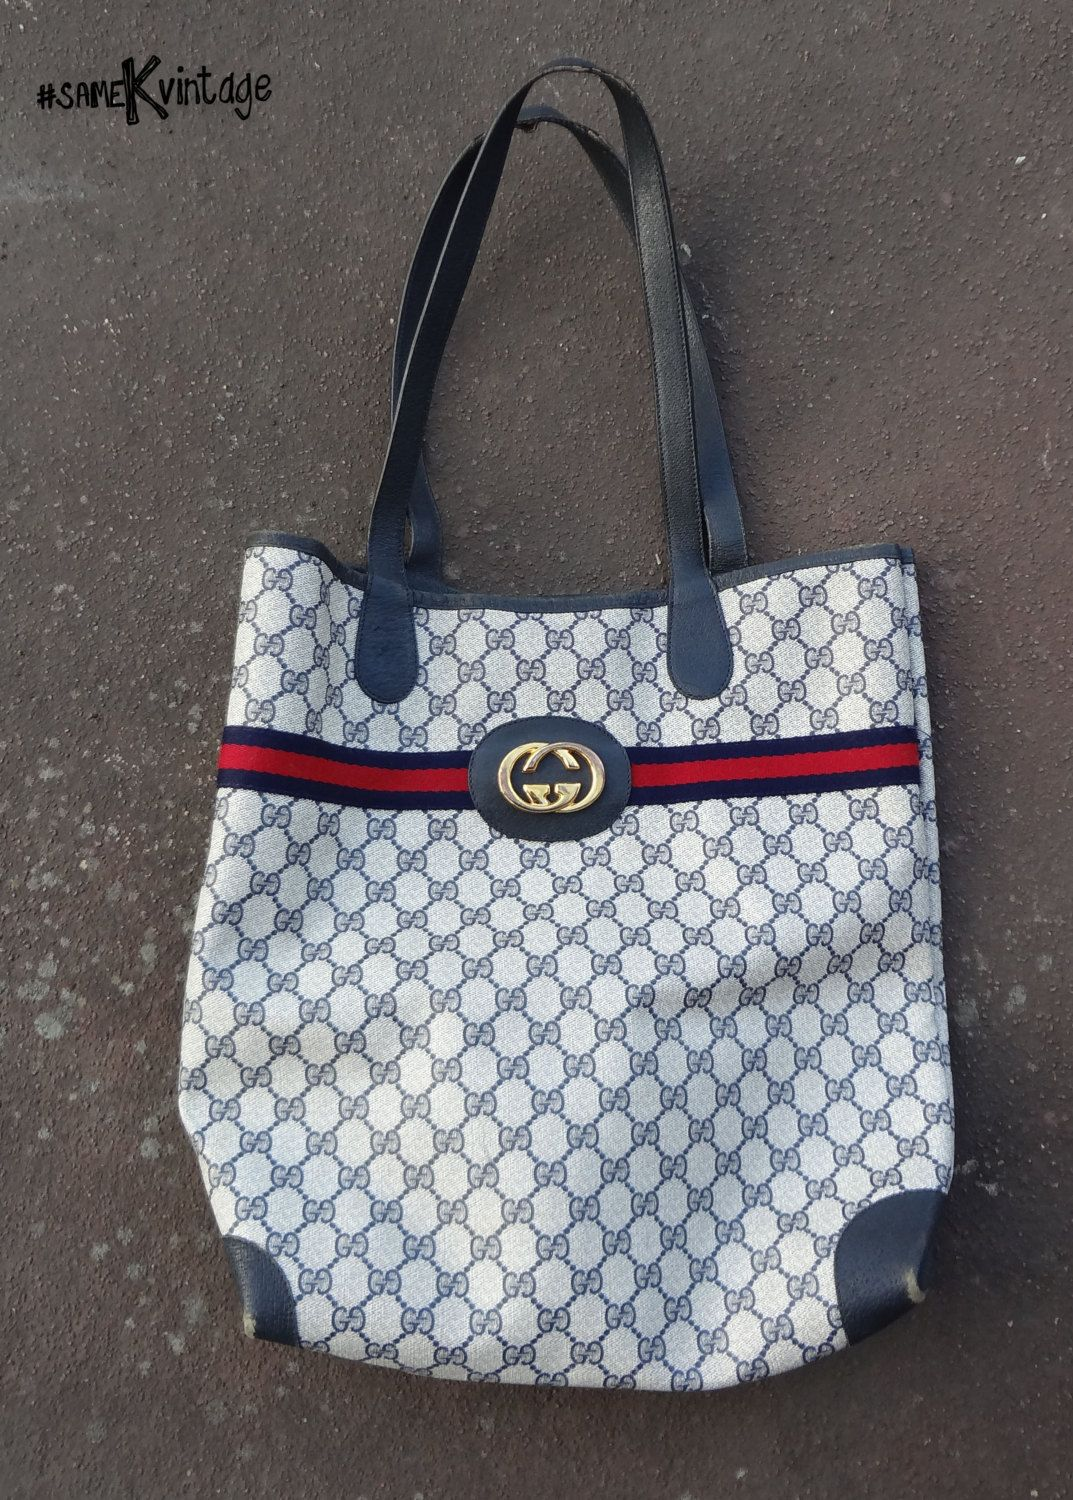 41b5a9b1fadf Authentic #Vintage #GUCCI Large #Tote GG Blue Monogram; 002-904-0131;  Shoppers Tote; Shoulder #Bag; Designer Fashion; Free Shipping USA by  #sameKVintage on ...